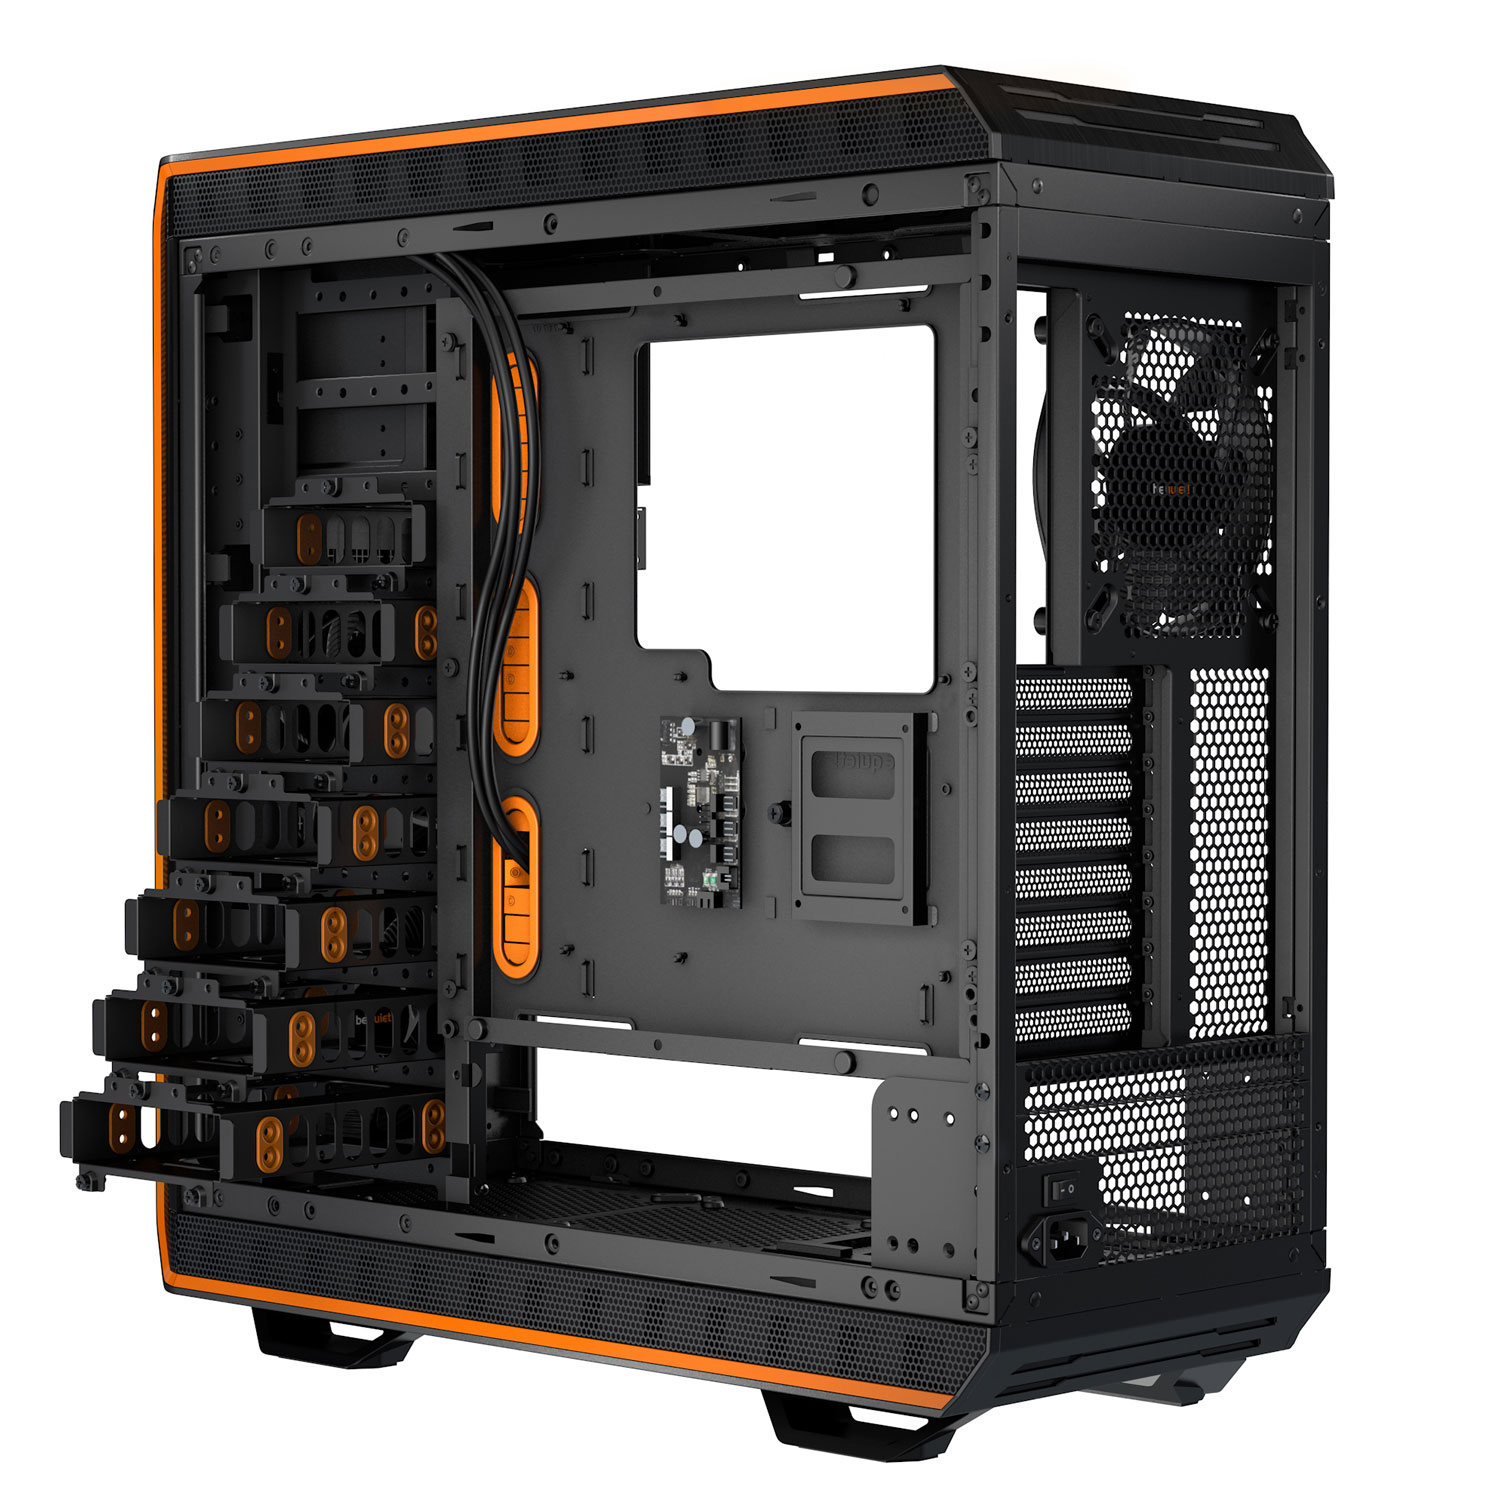 Boitier PC Be Quiet Dark Base 900 Noir/Orange(sans alim), informatique ile de la Réunion 974